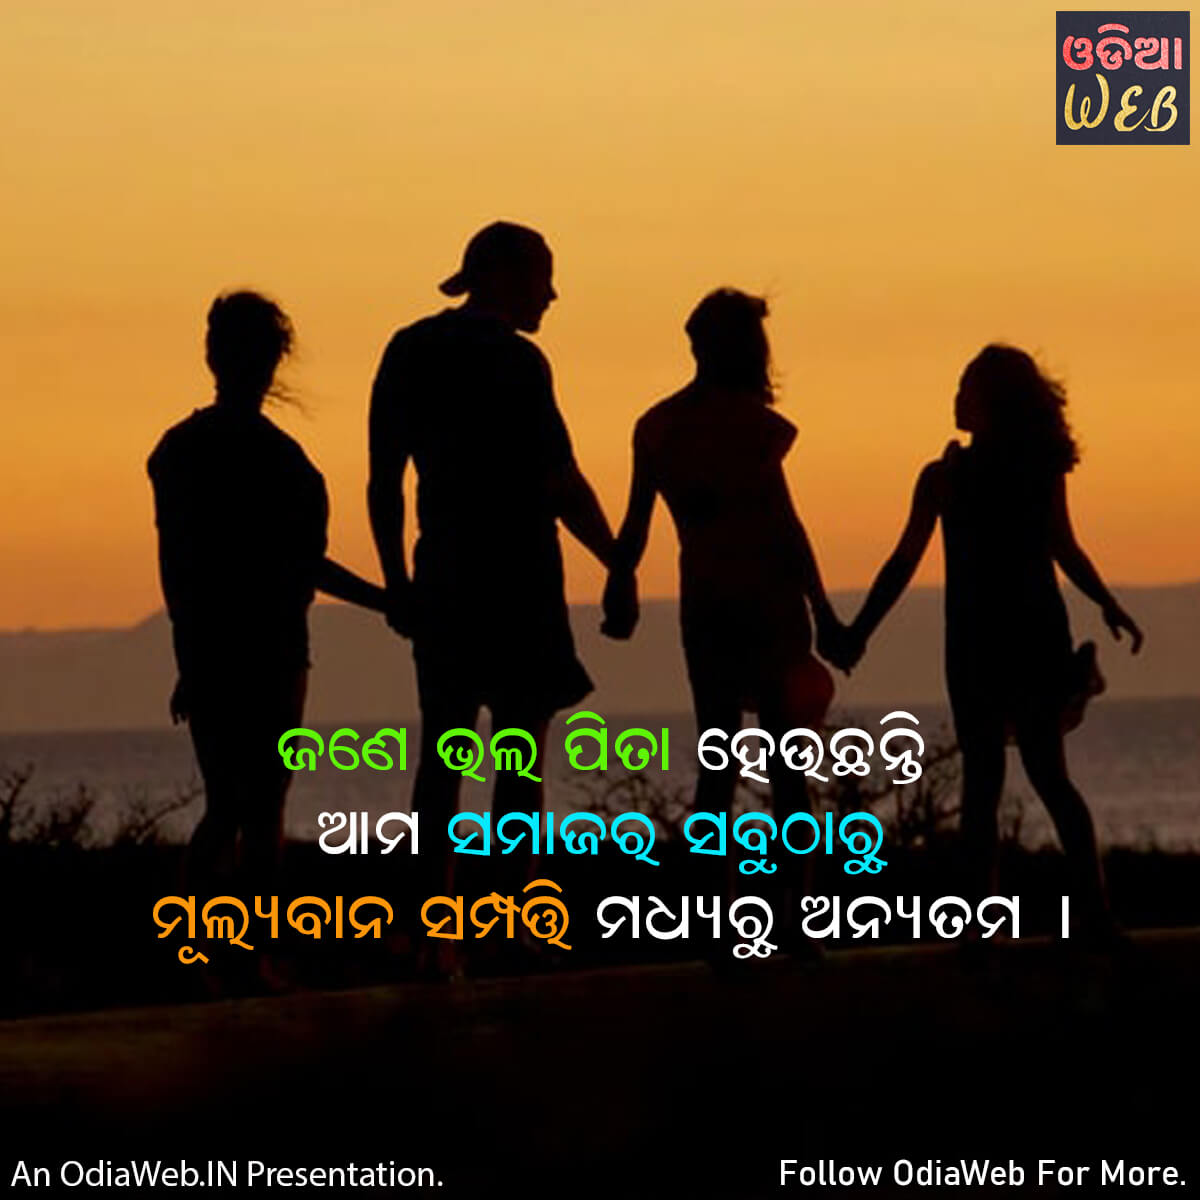 Odia Quotes2 on Father